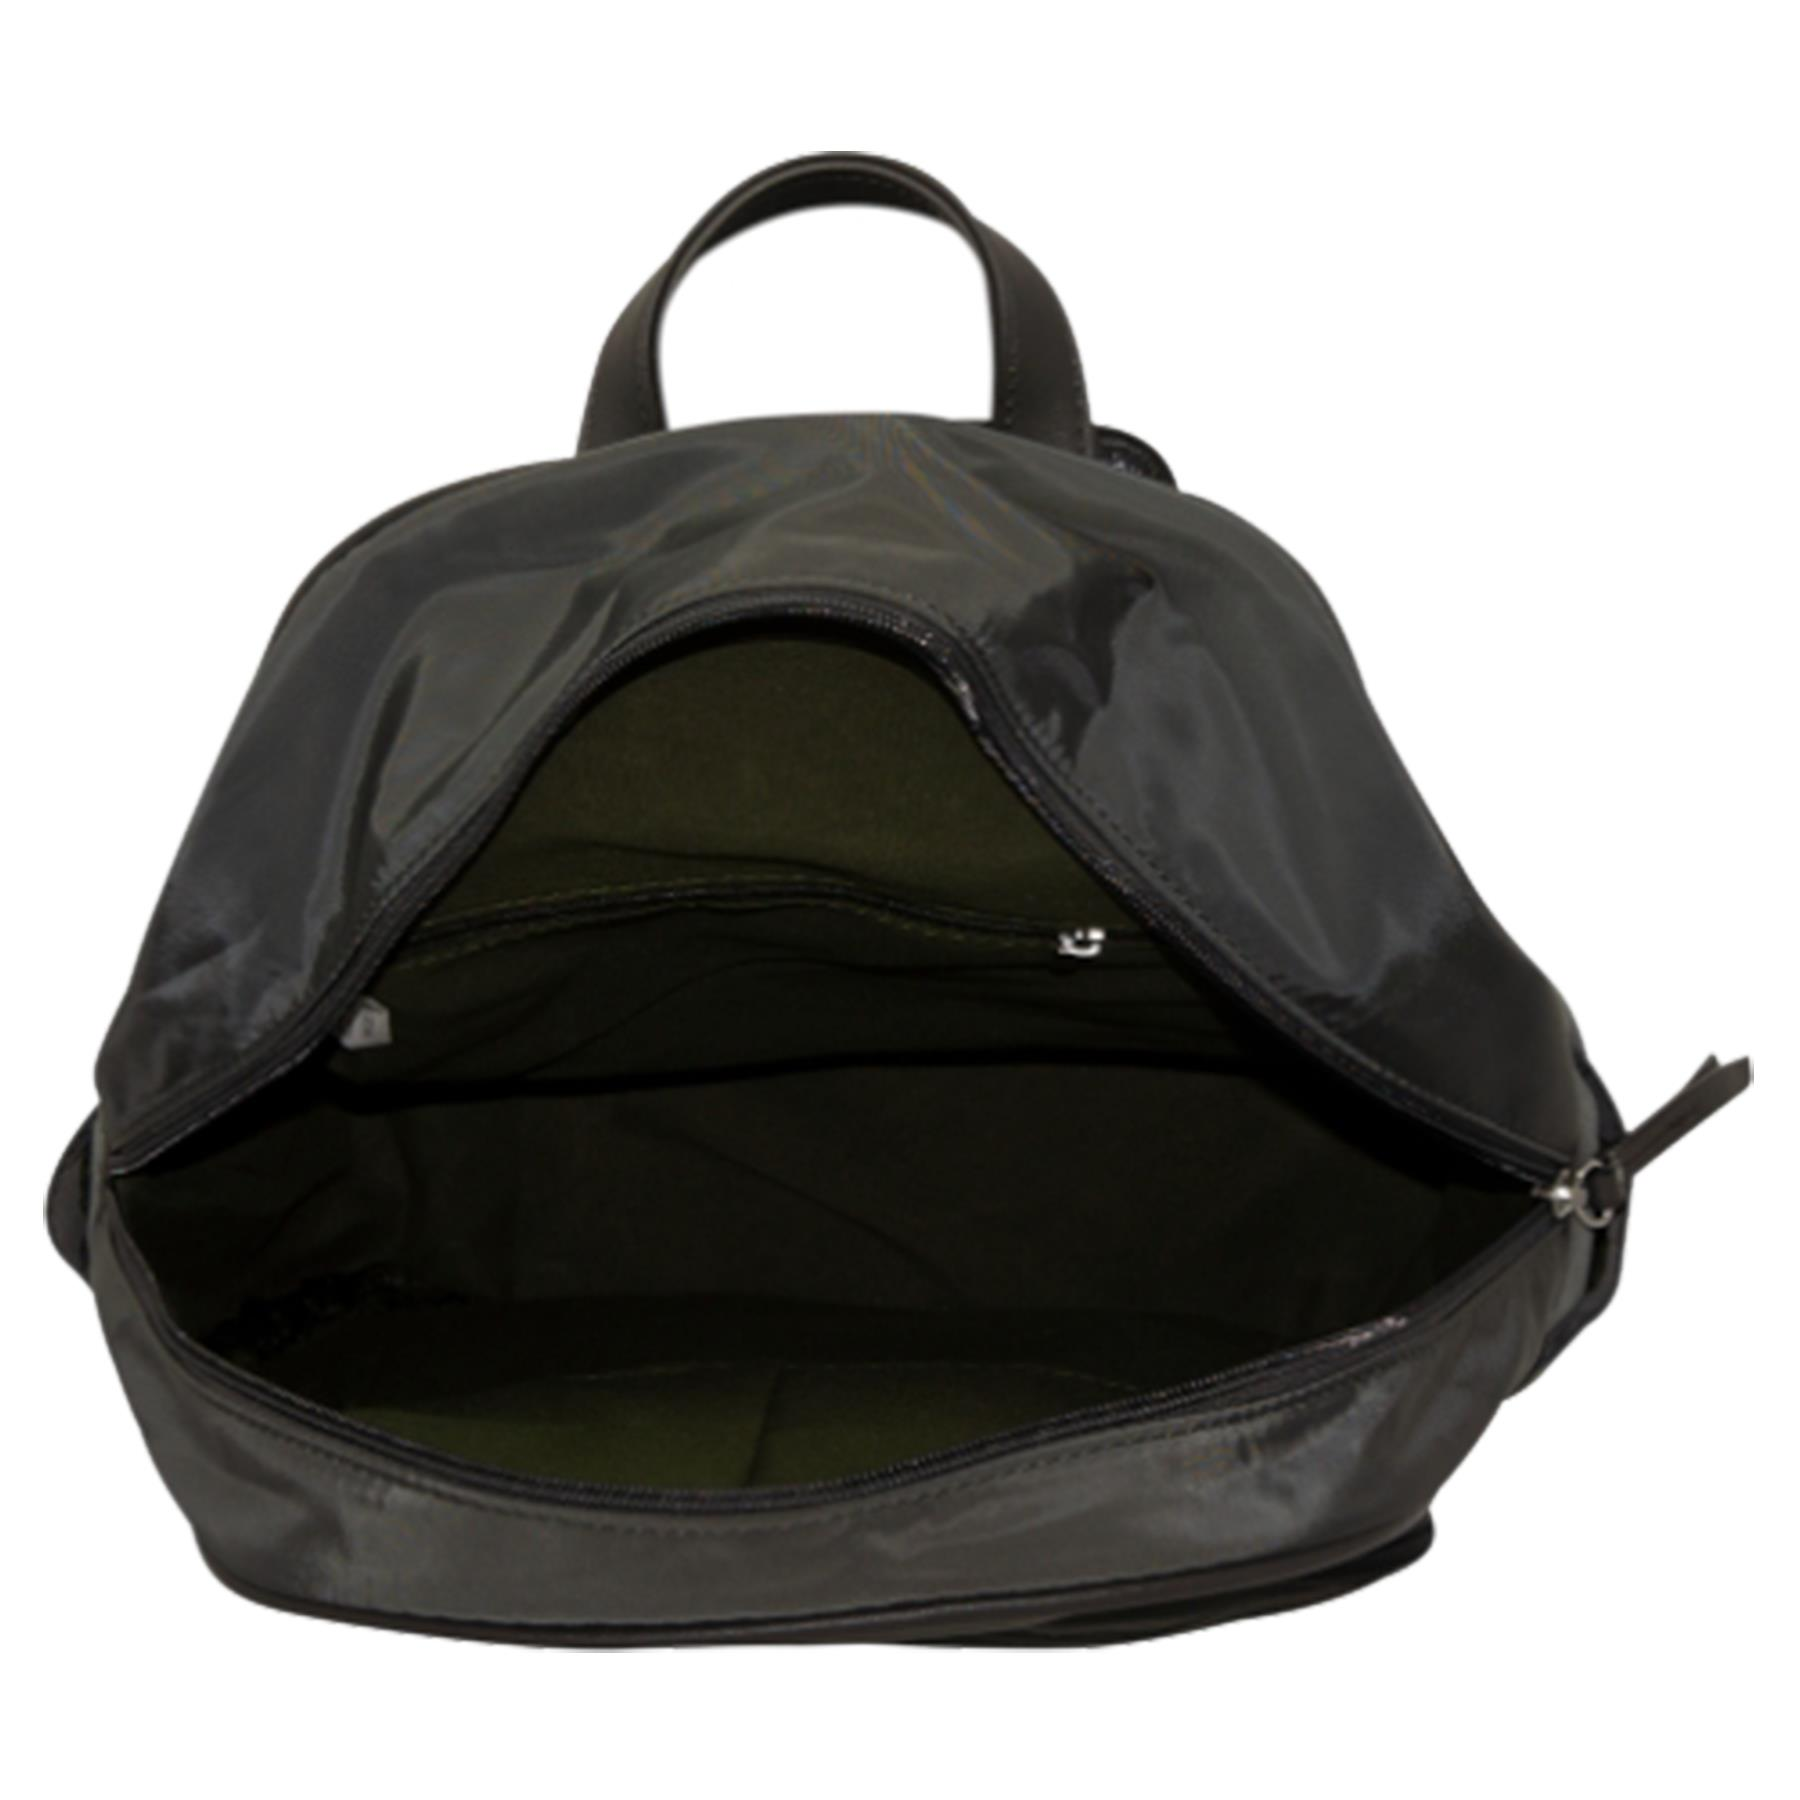 New-Unisex-Plain-Nylon-Showerproof-School-College-Backpack-Rucksack thumbnail 20